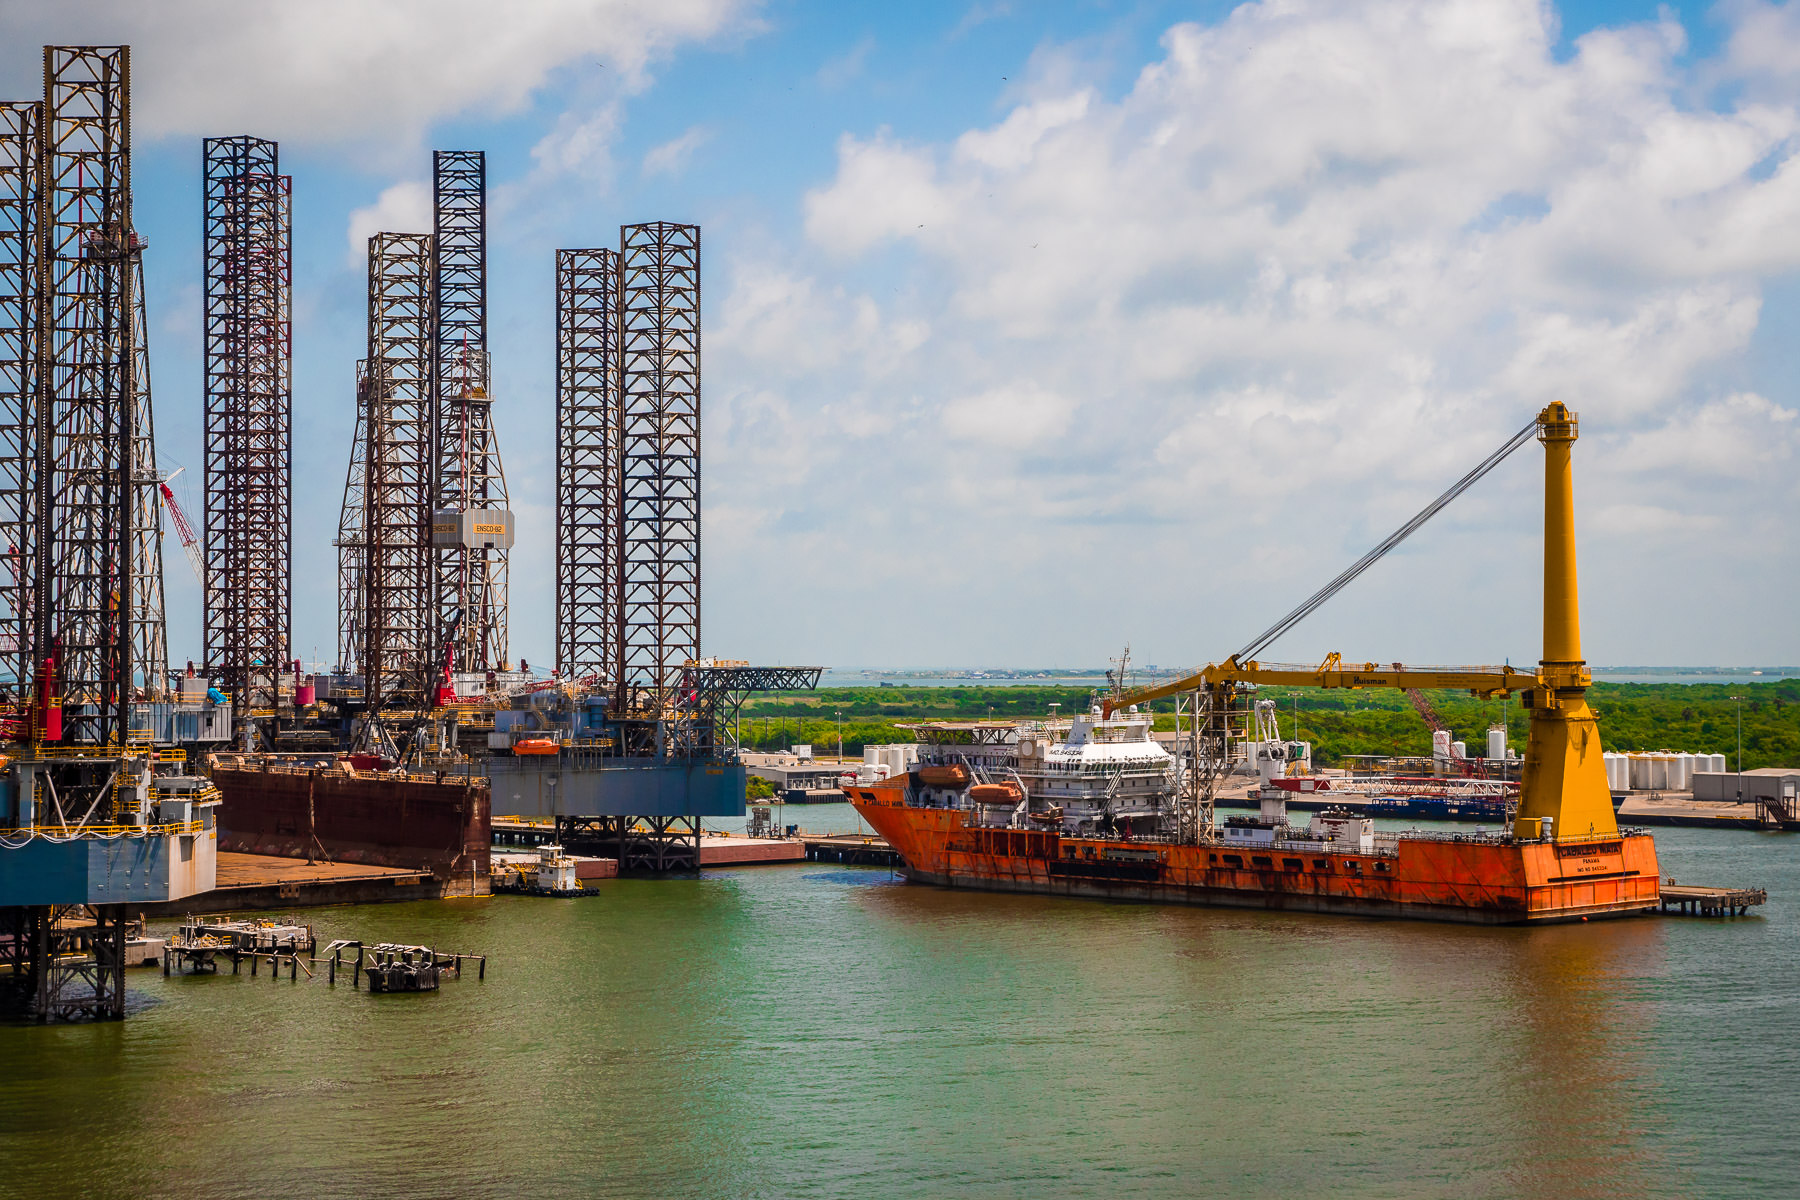 The offshore supply ship Caballo Maya, docked adjacent to jack-up oil platforms at Pelican Island, Galveston, Texas.